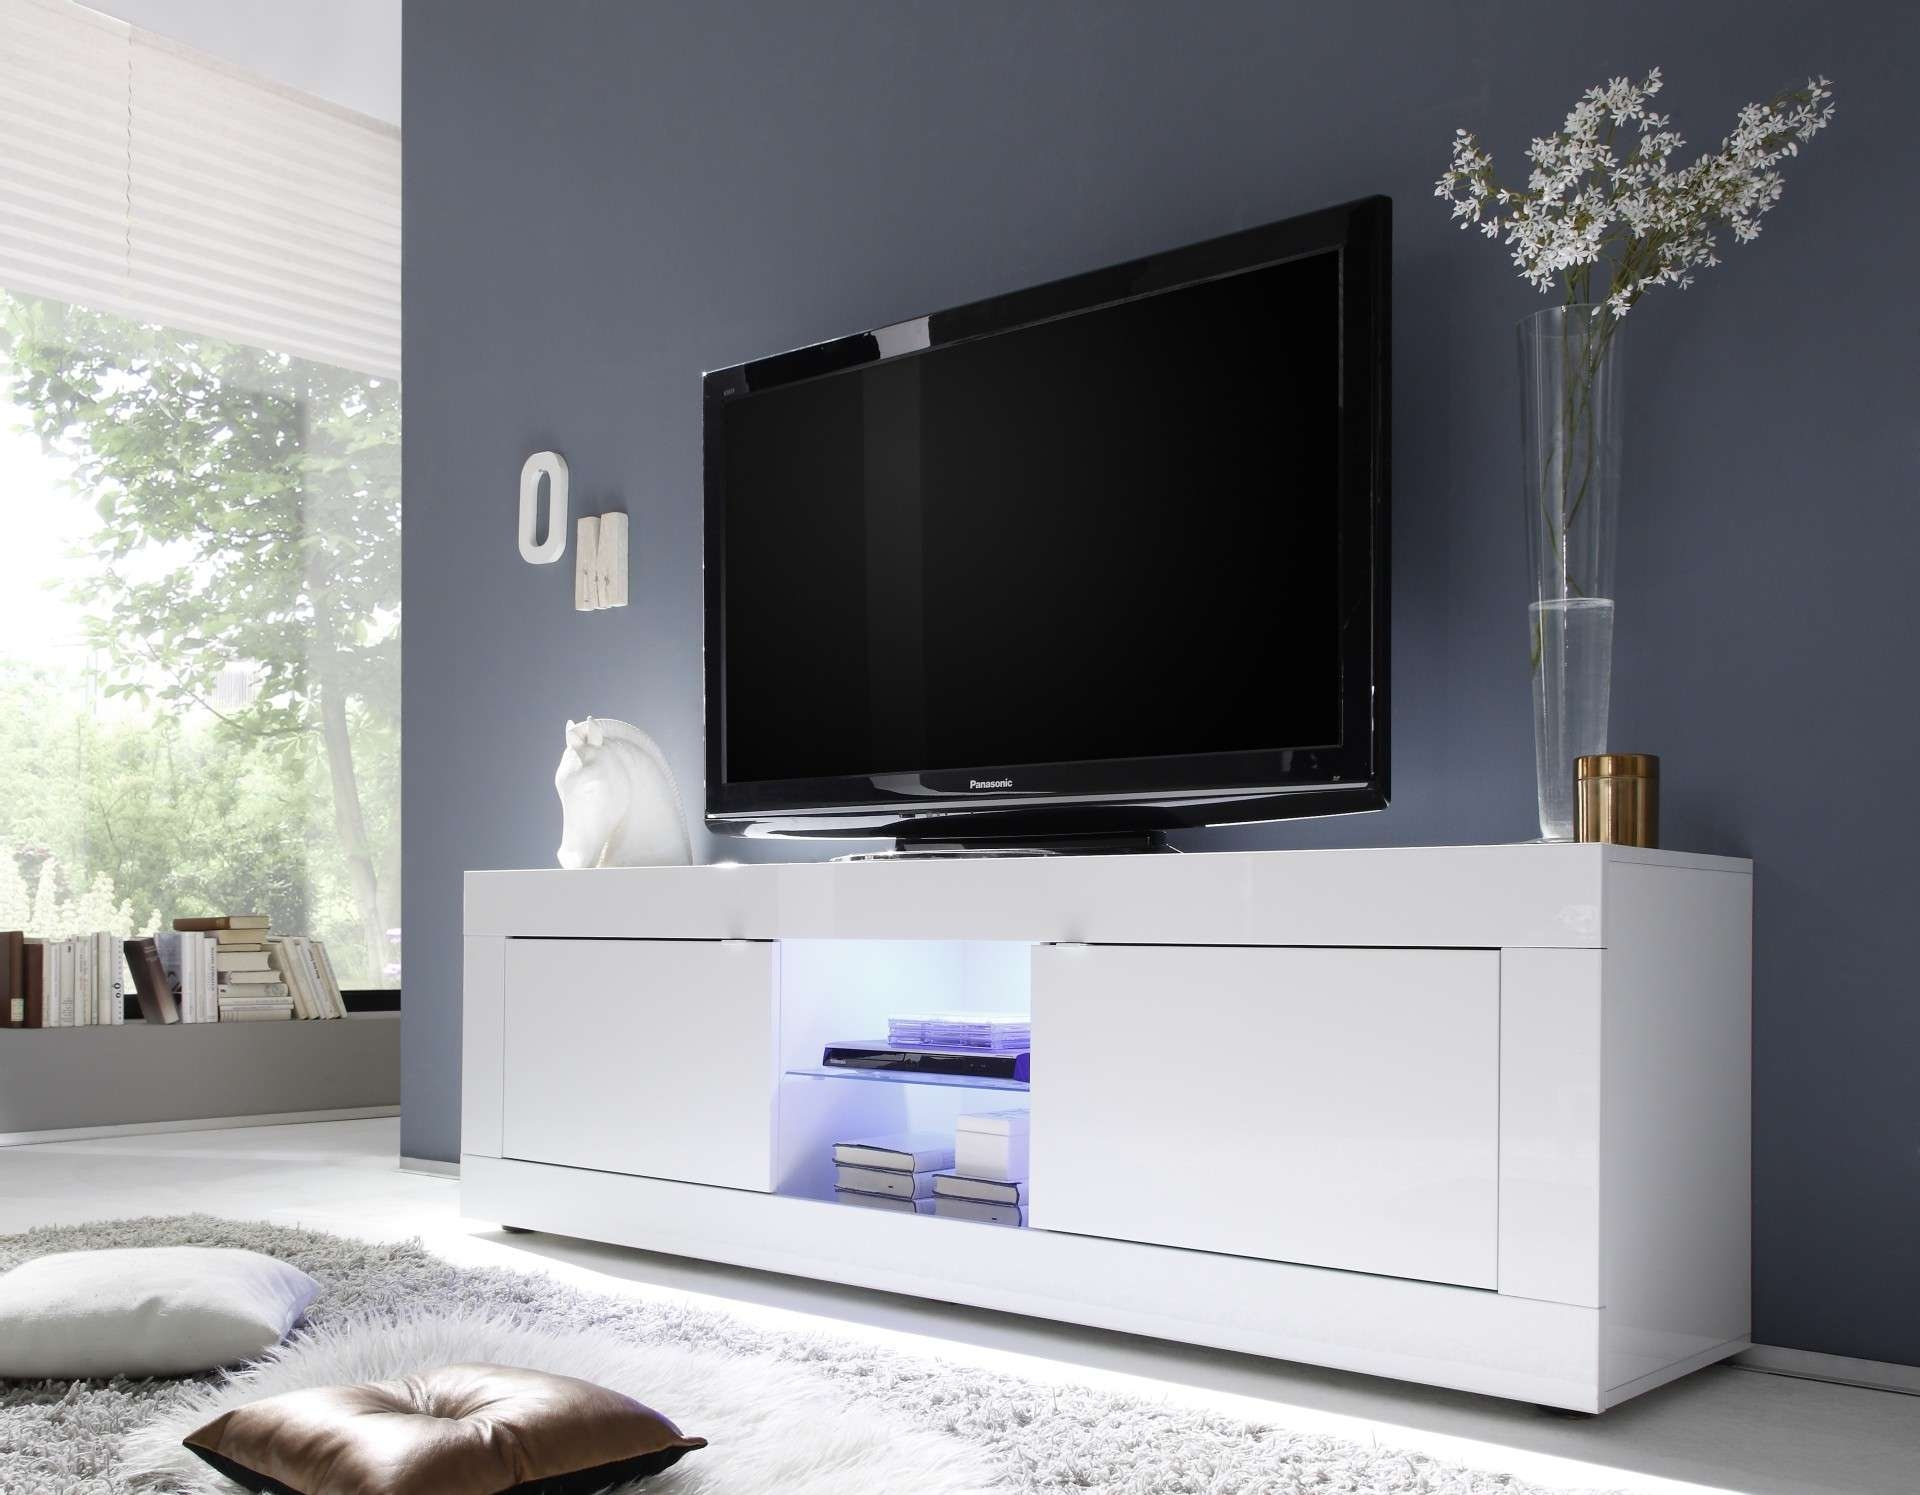 Dolcevita Ii Gloss Tv Stand – Tv Stands – Sena Home Furniture With Regard To Gloss White Tv Cabinets (View 6 of 20)